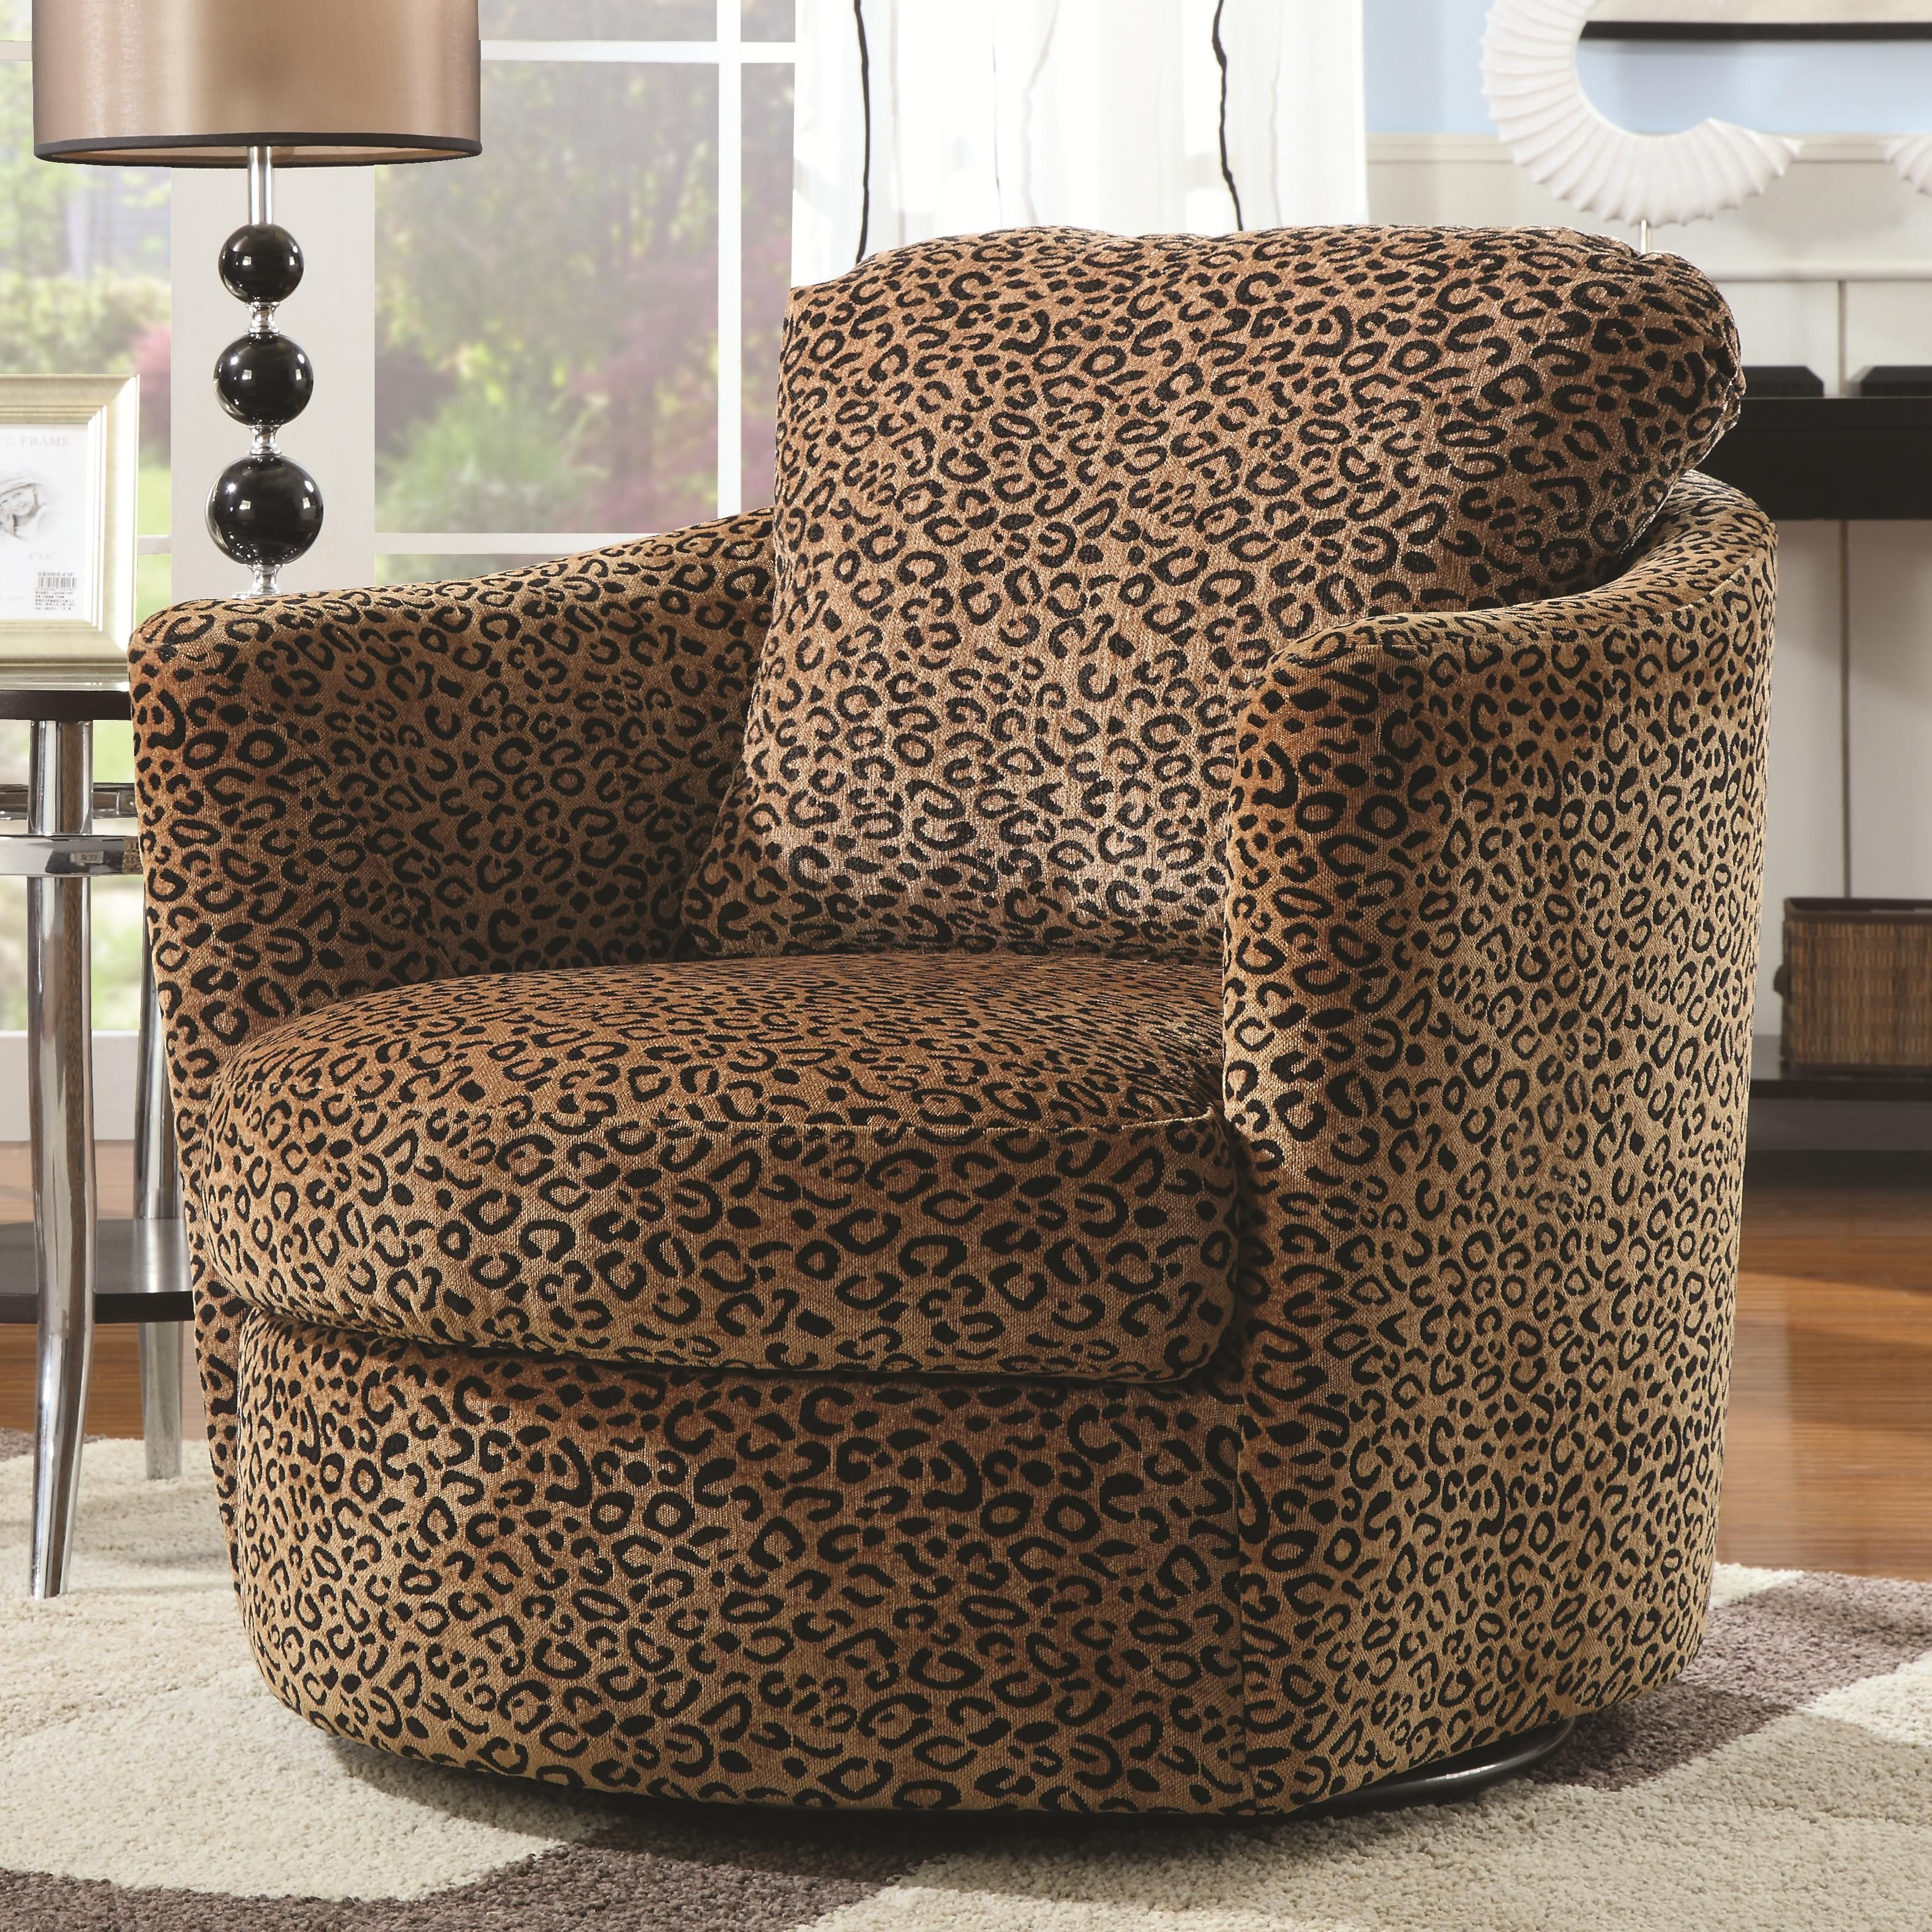 Room Accent Seating Swivel Chair